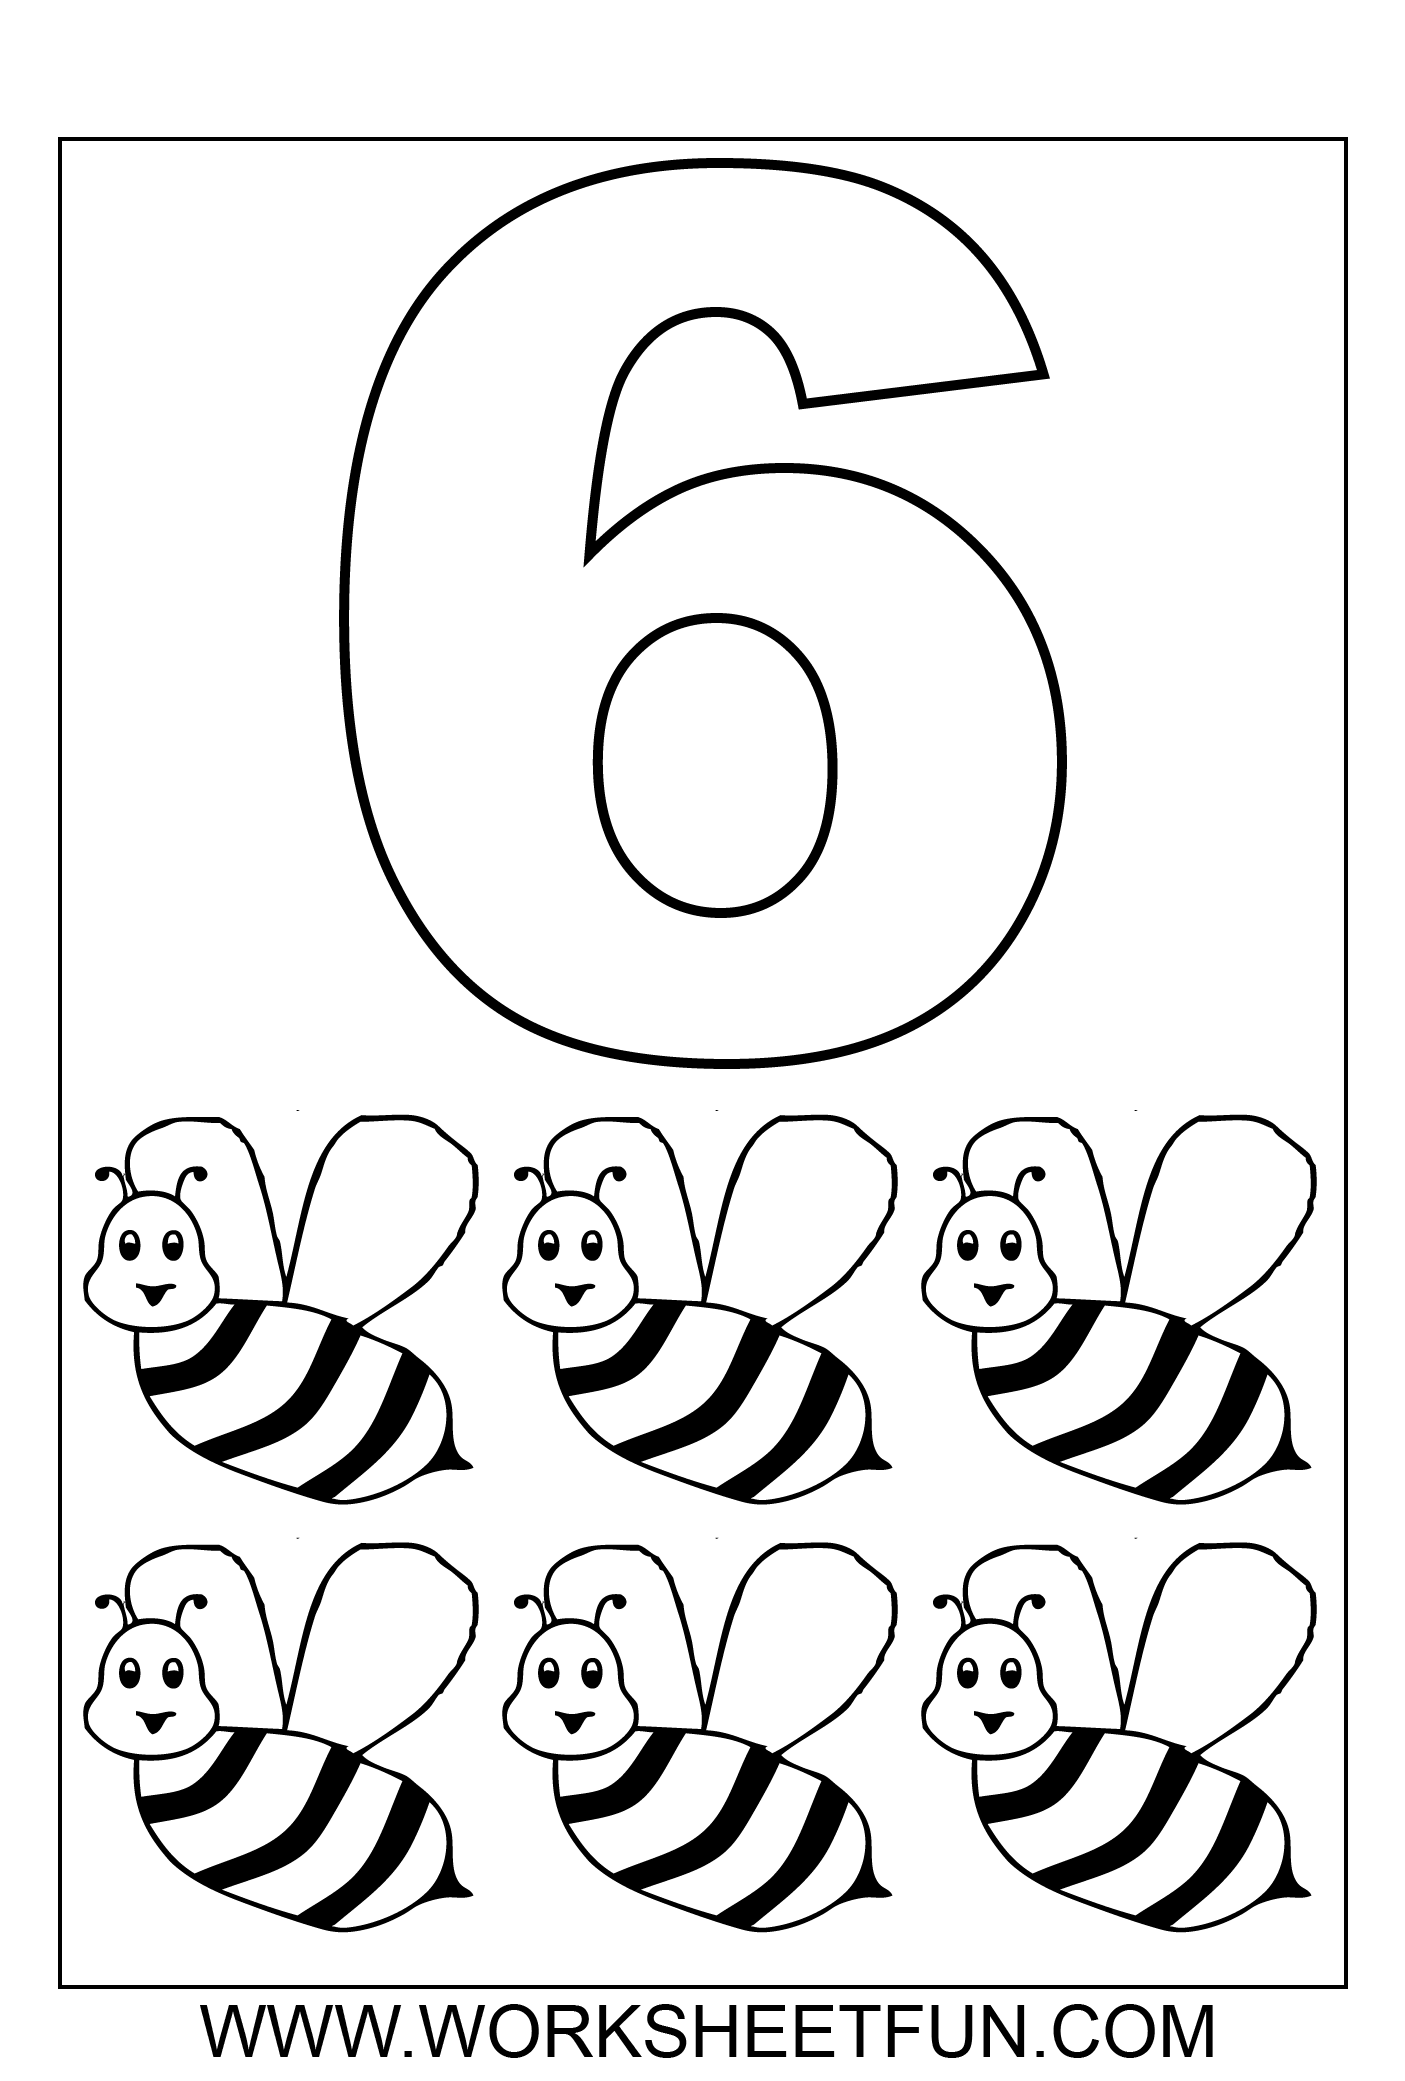 number coloring 1 10 ten worksheets - Kindergarten Coloring Page